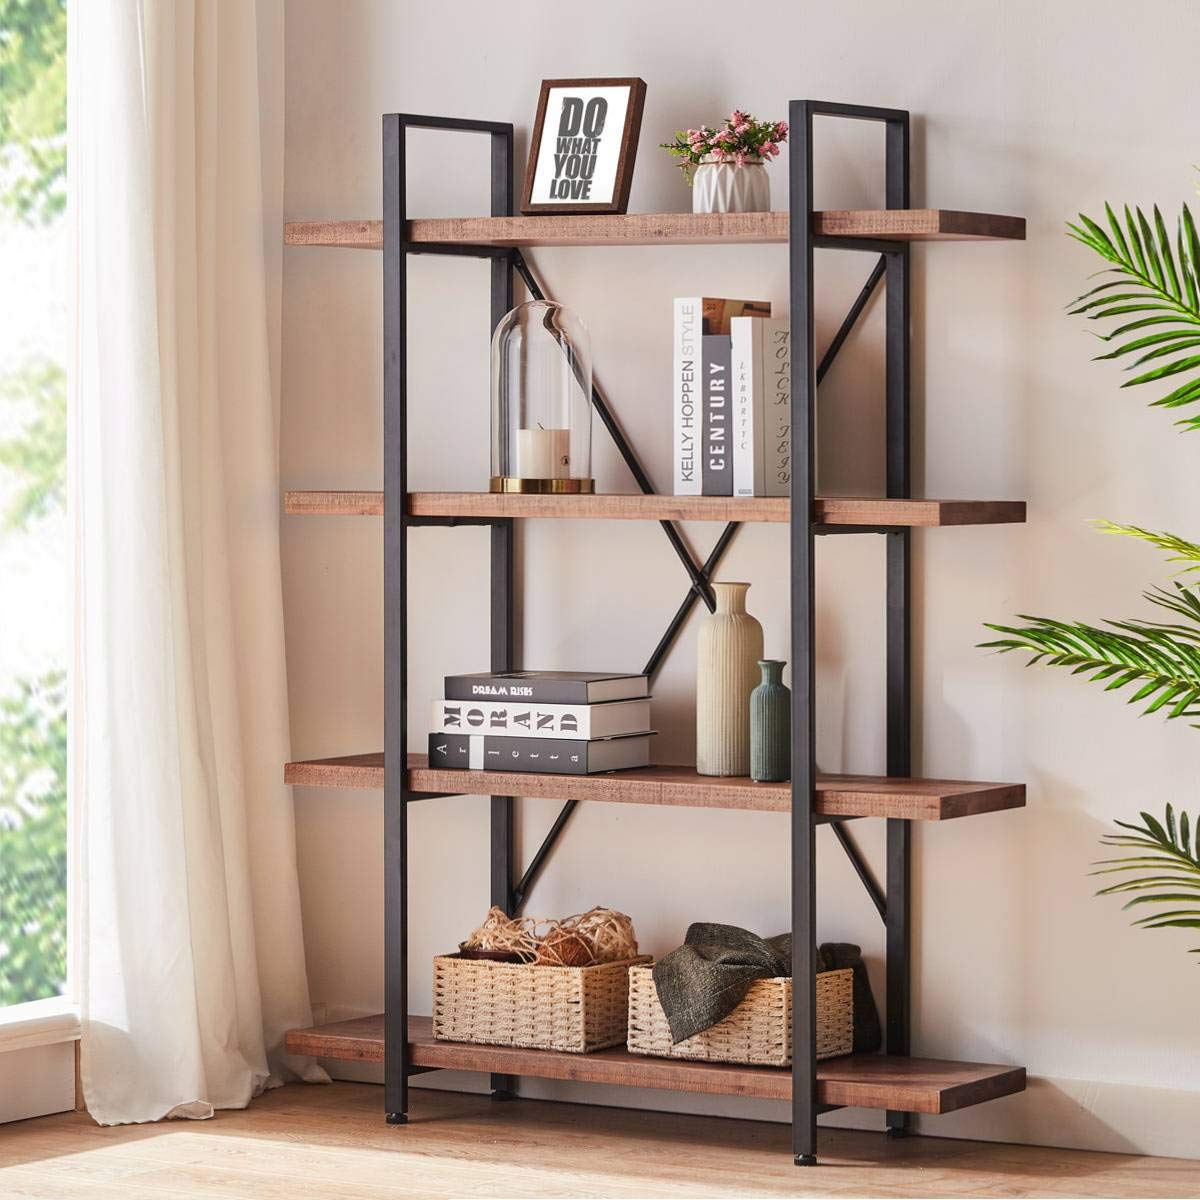 HSH Solid Wood Bookshelf, 4 Tier Rustic Vintage Industrial Etagere Bookcase, Open Metal Farmhouse Book Shelf, Distressed Brown